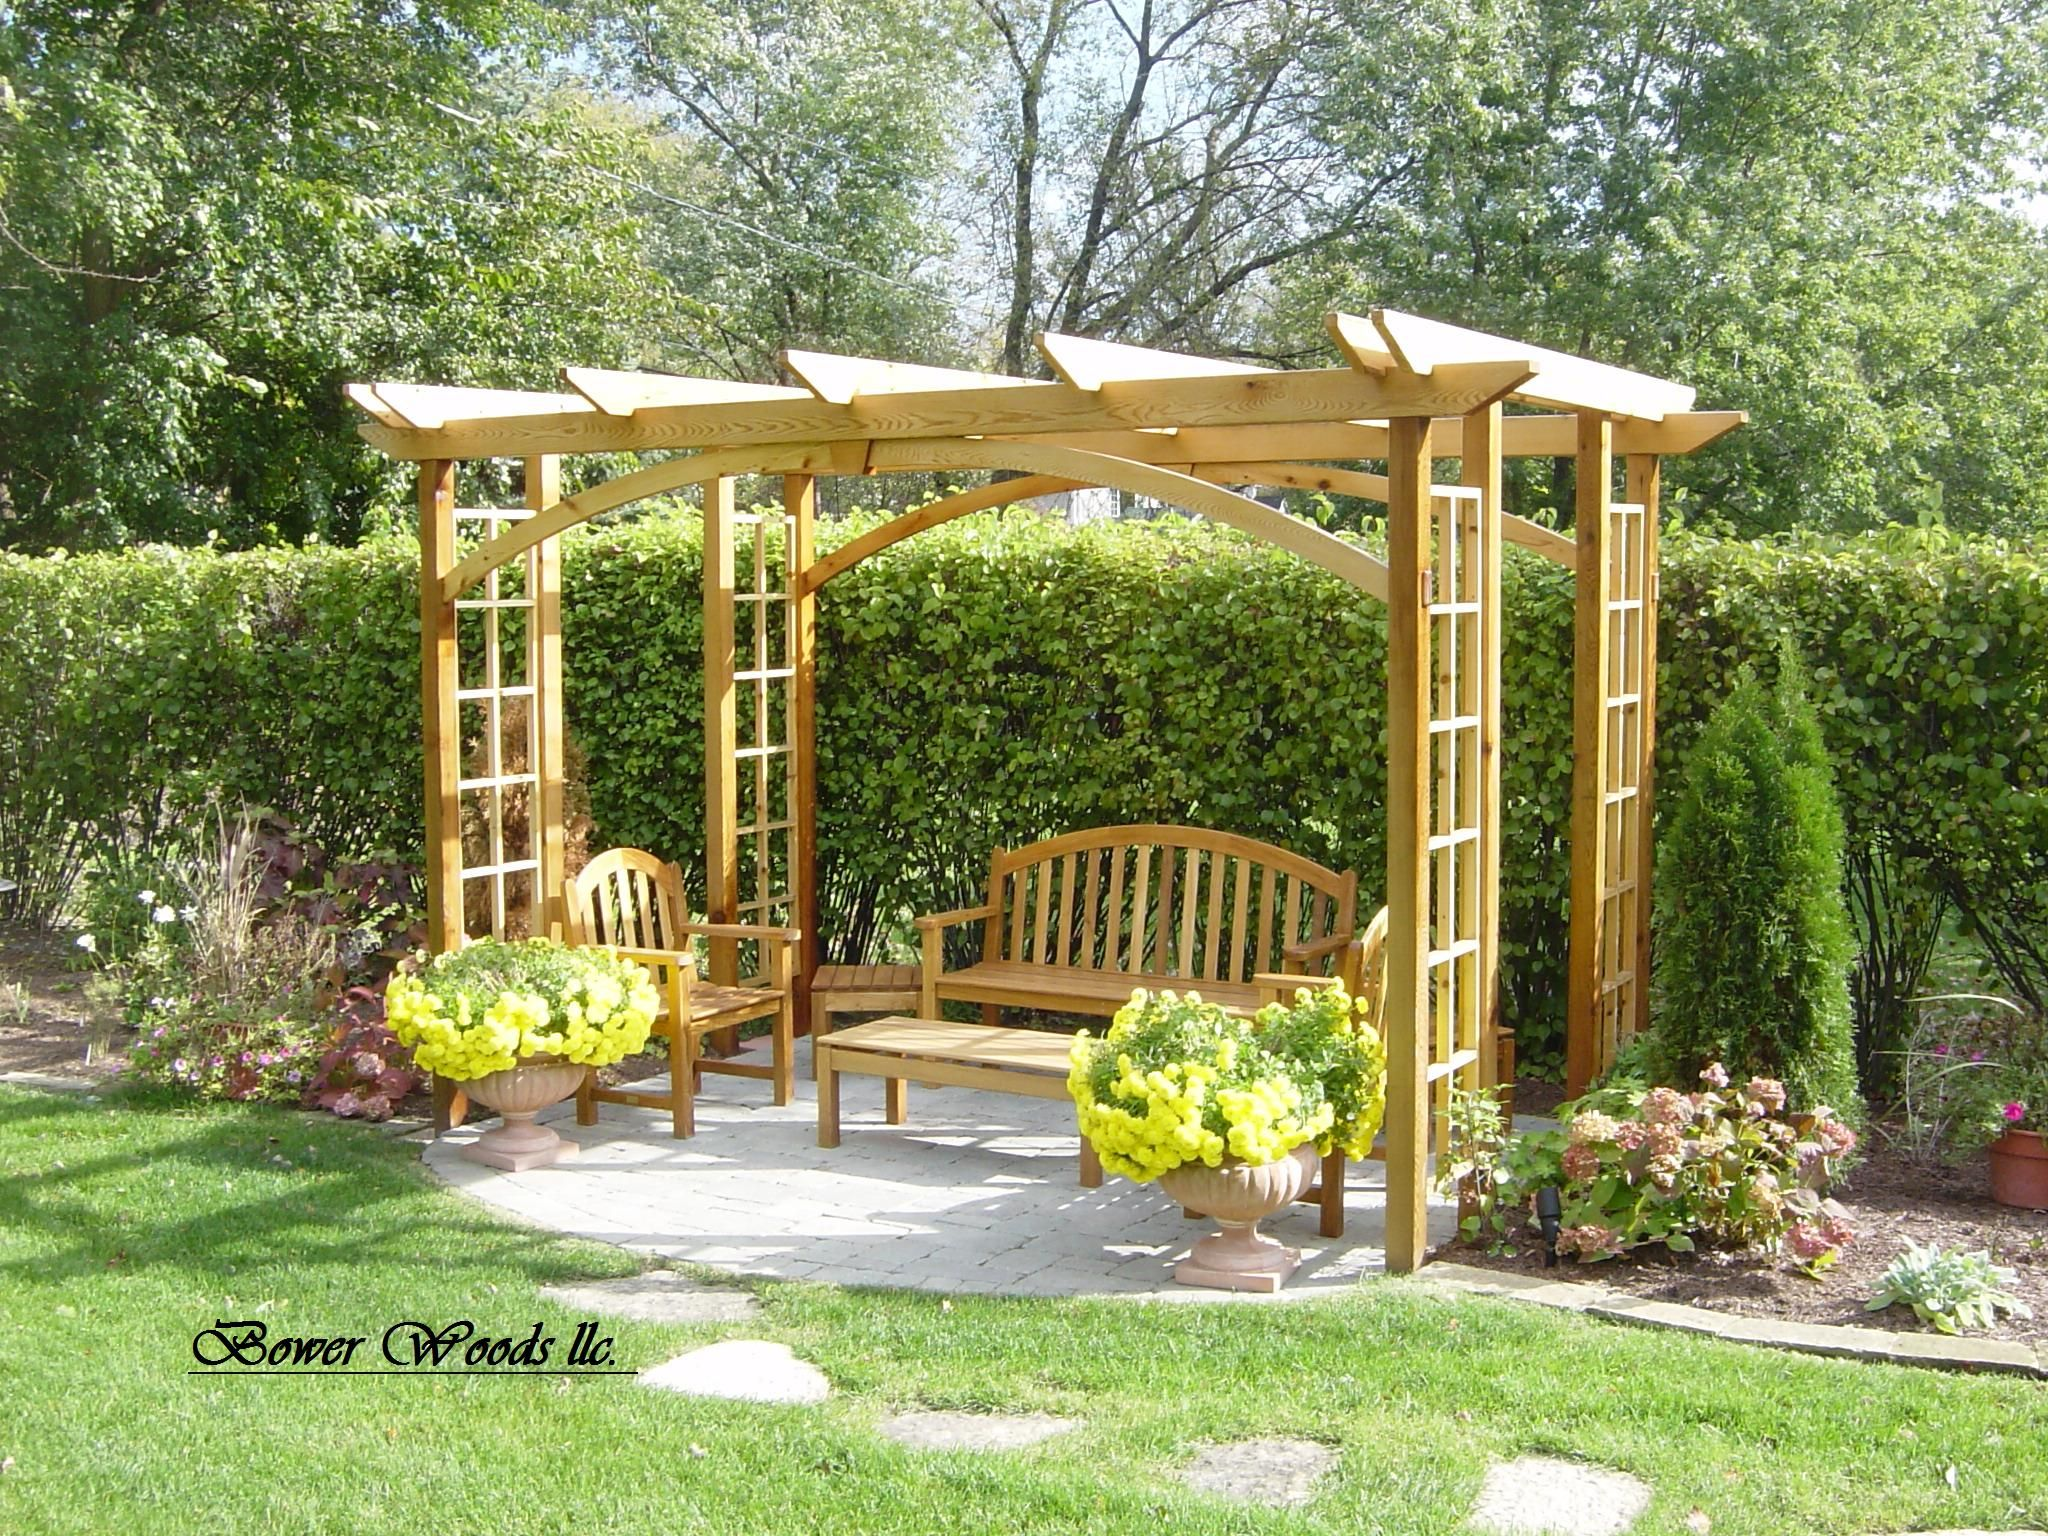 17 best images about pergola pergola on pinterest arbor design ideas - Arbor Design Ideas